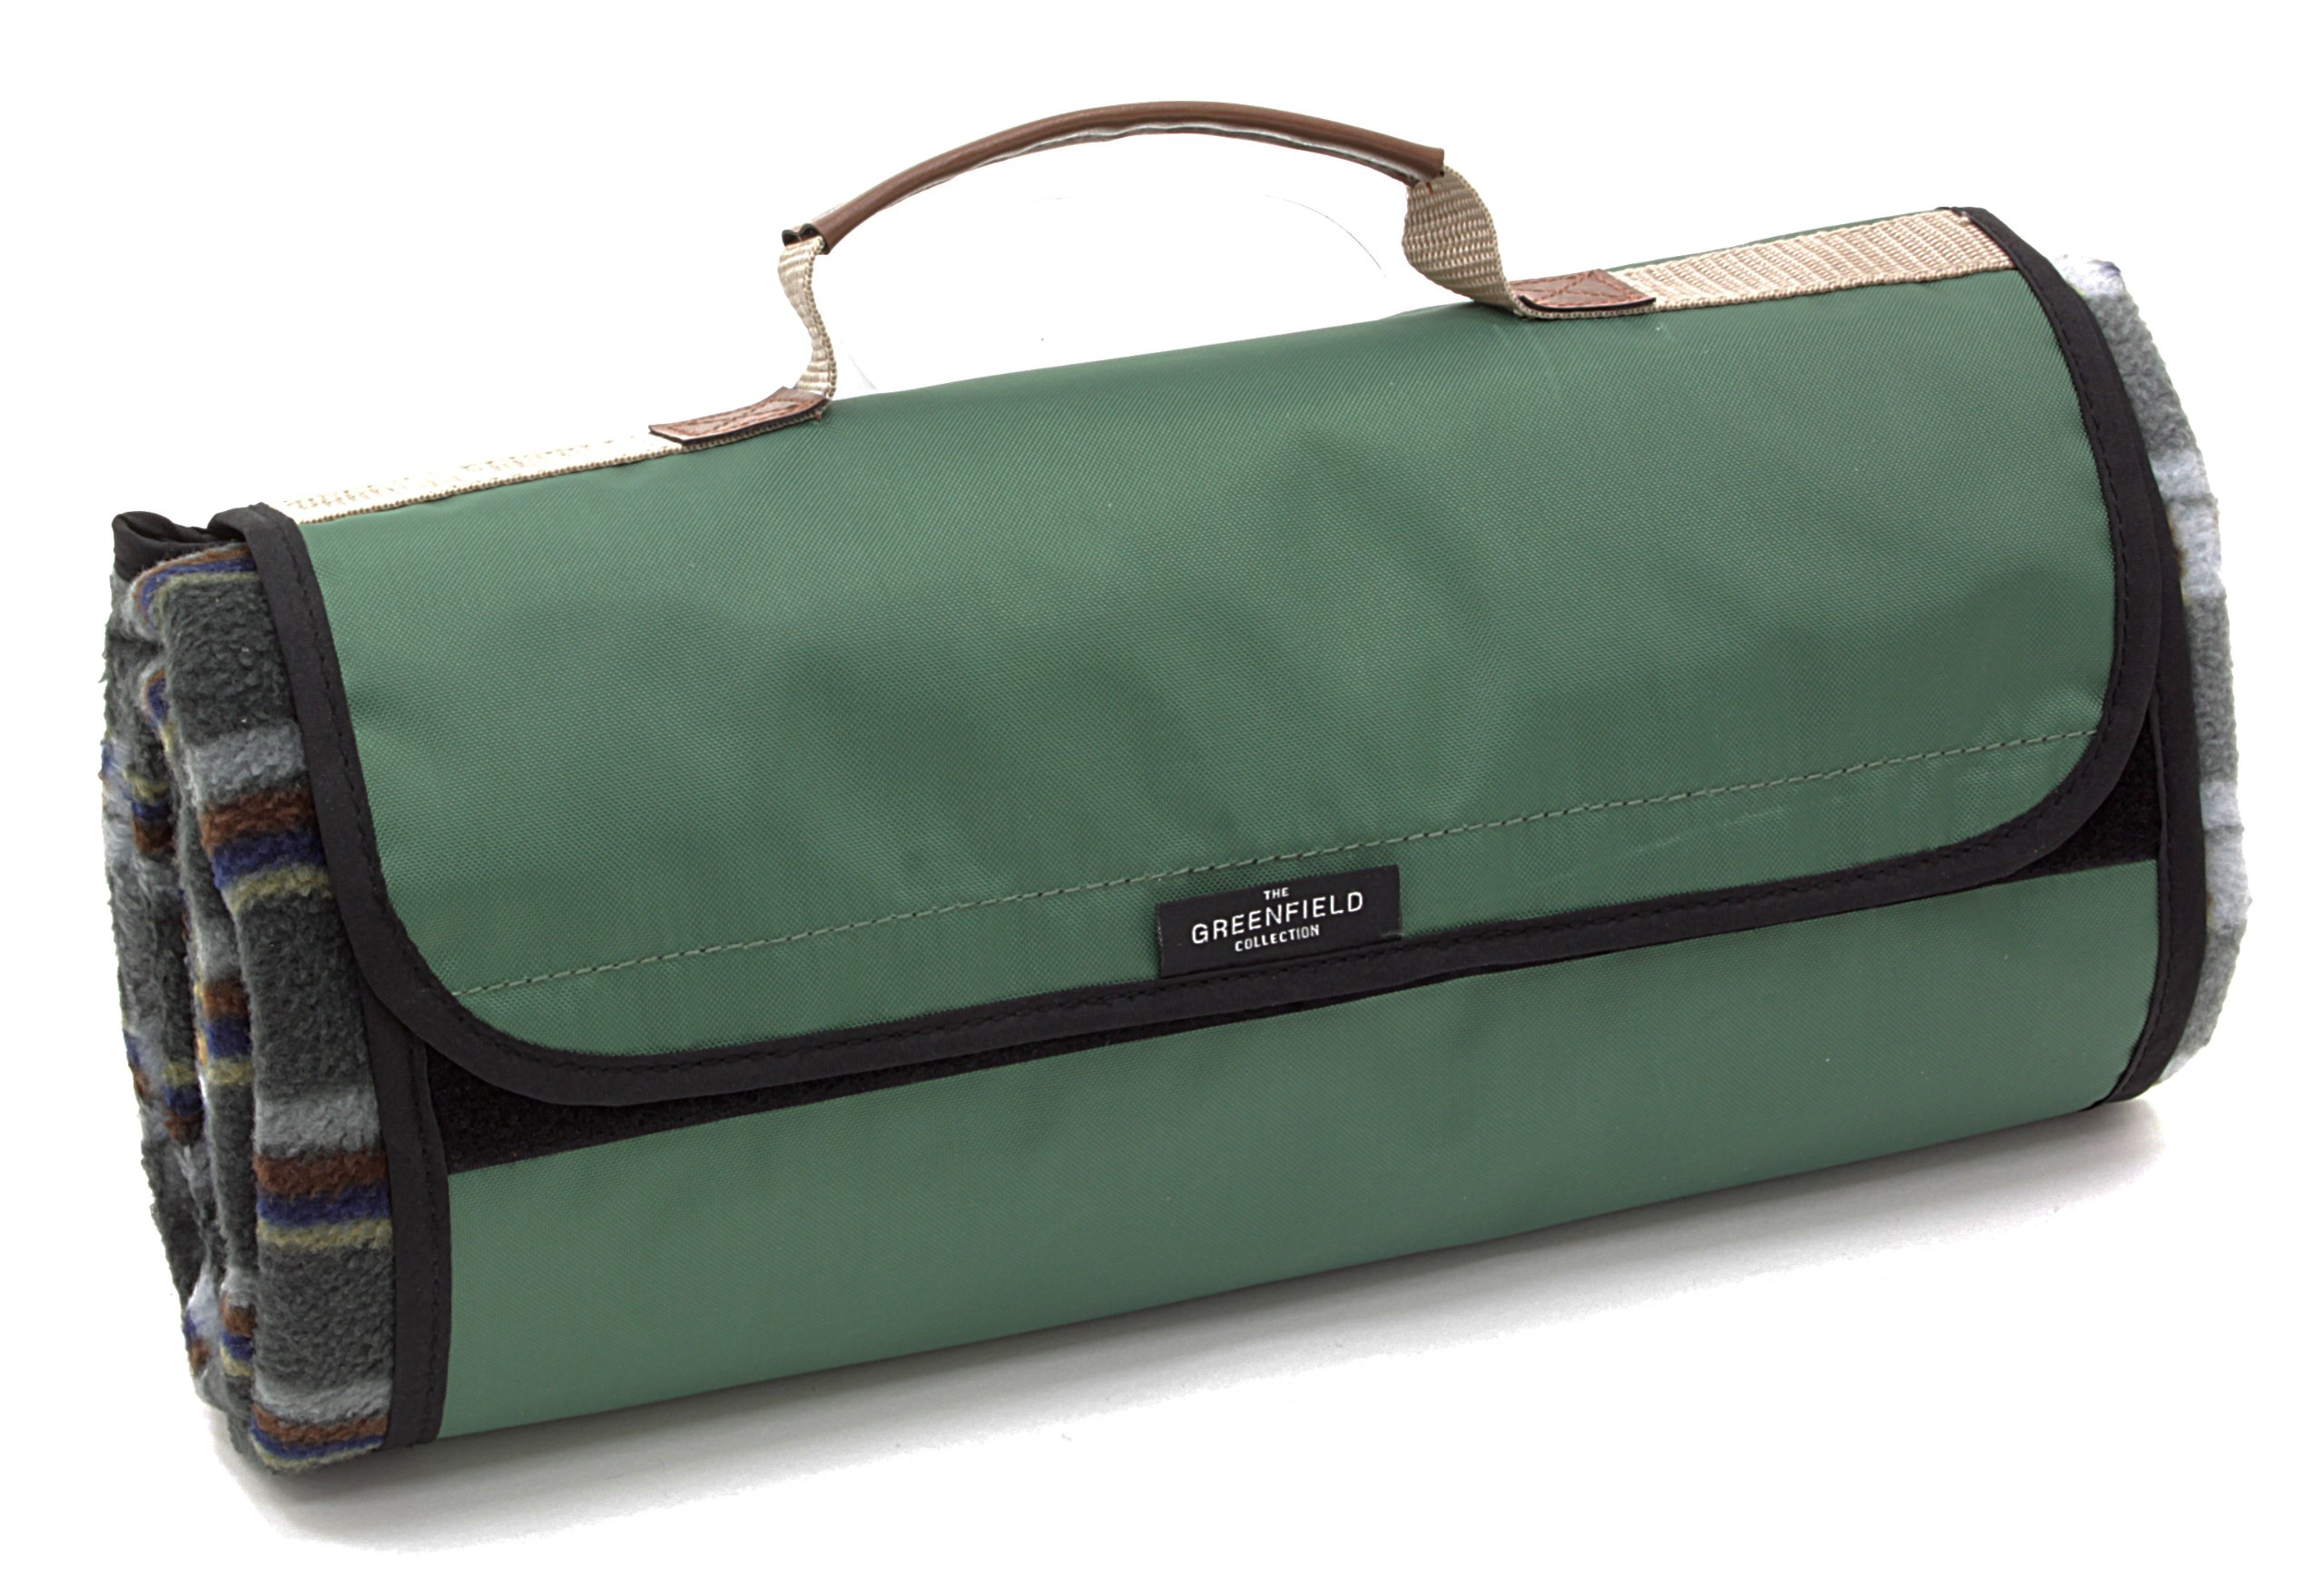 Greenfield Collection Moisture Resistant Luxury Picnic Blanket, Forest Green Plaid by Greenfield Collection